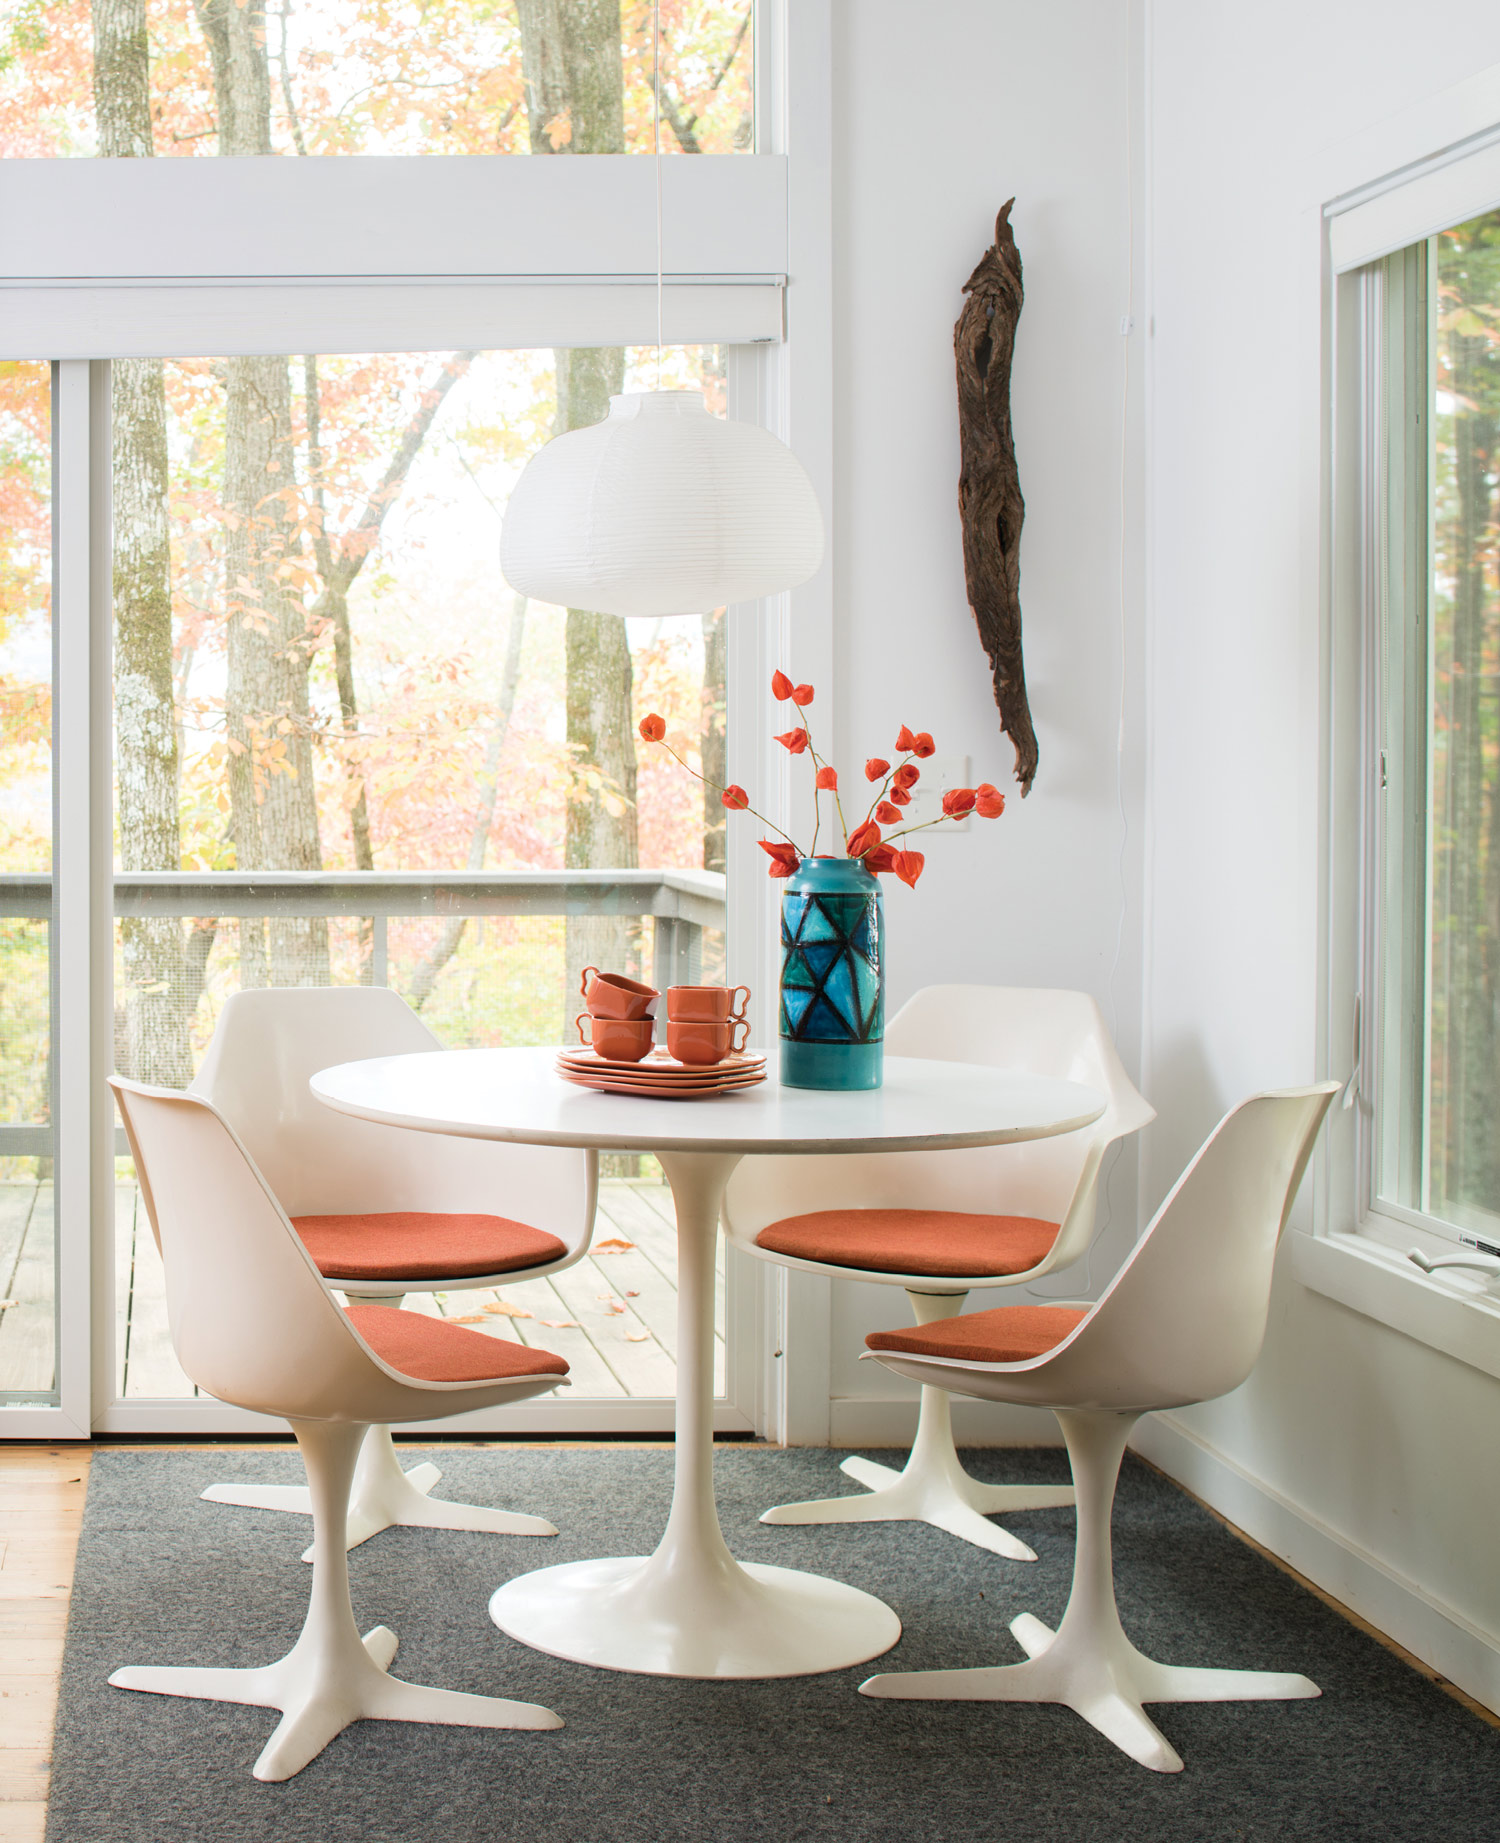 The 1940s Franciscan Metropolitan dishes and the new seat cushions on the vintage Burke dining set bring pops of orange to the dining room. The Noguchi-style pendant light is from Ikea. Interface carpet tiles protect the pine floor.